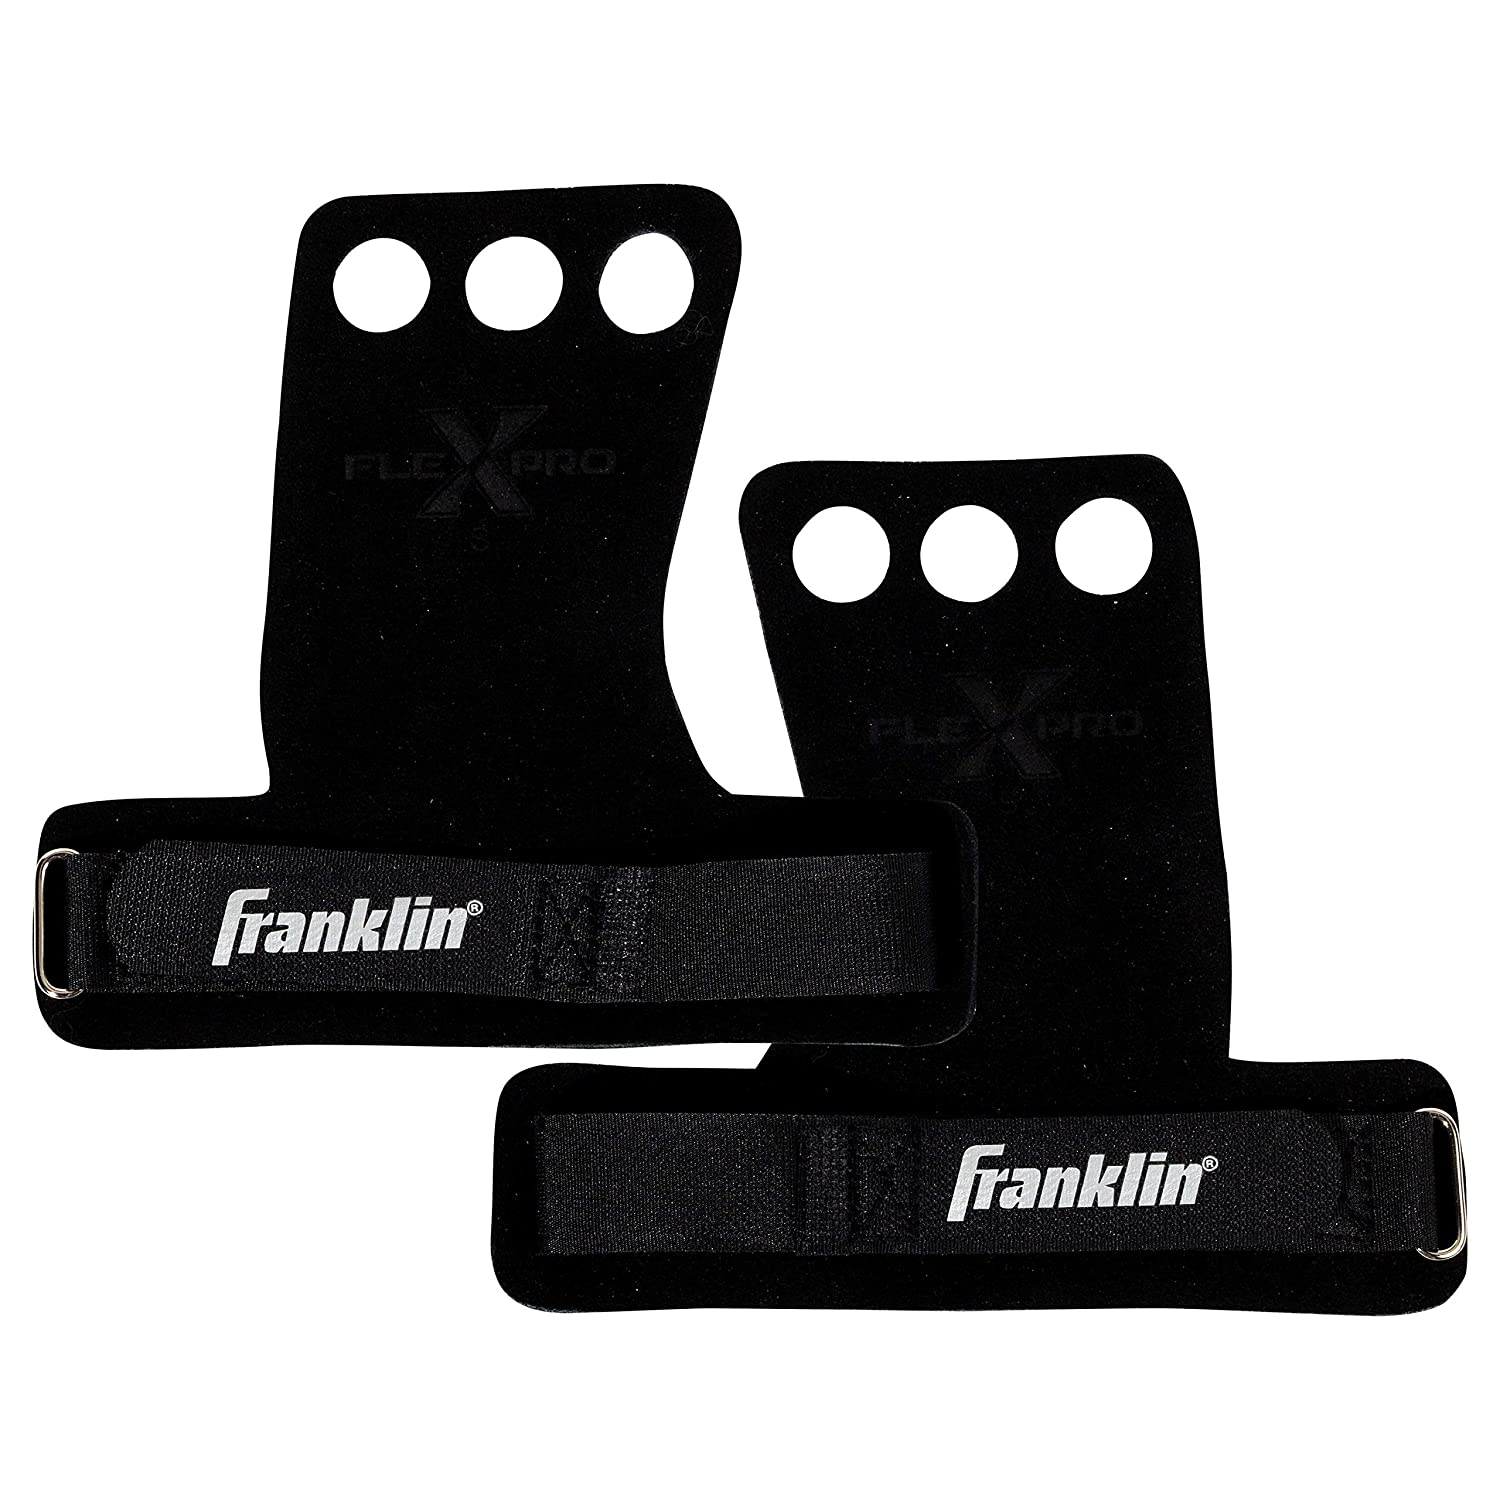 Pull-Ups Franklin Sports 2 Hole Leather Hand Grips for Gymnastics Weightlifting Bars Crossfit Youth Hand Protection for Workouts Medium